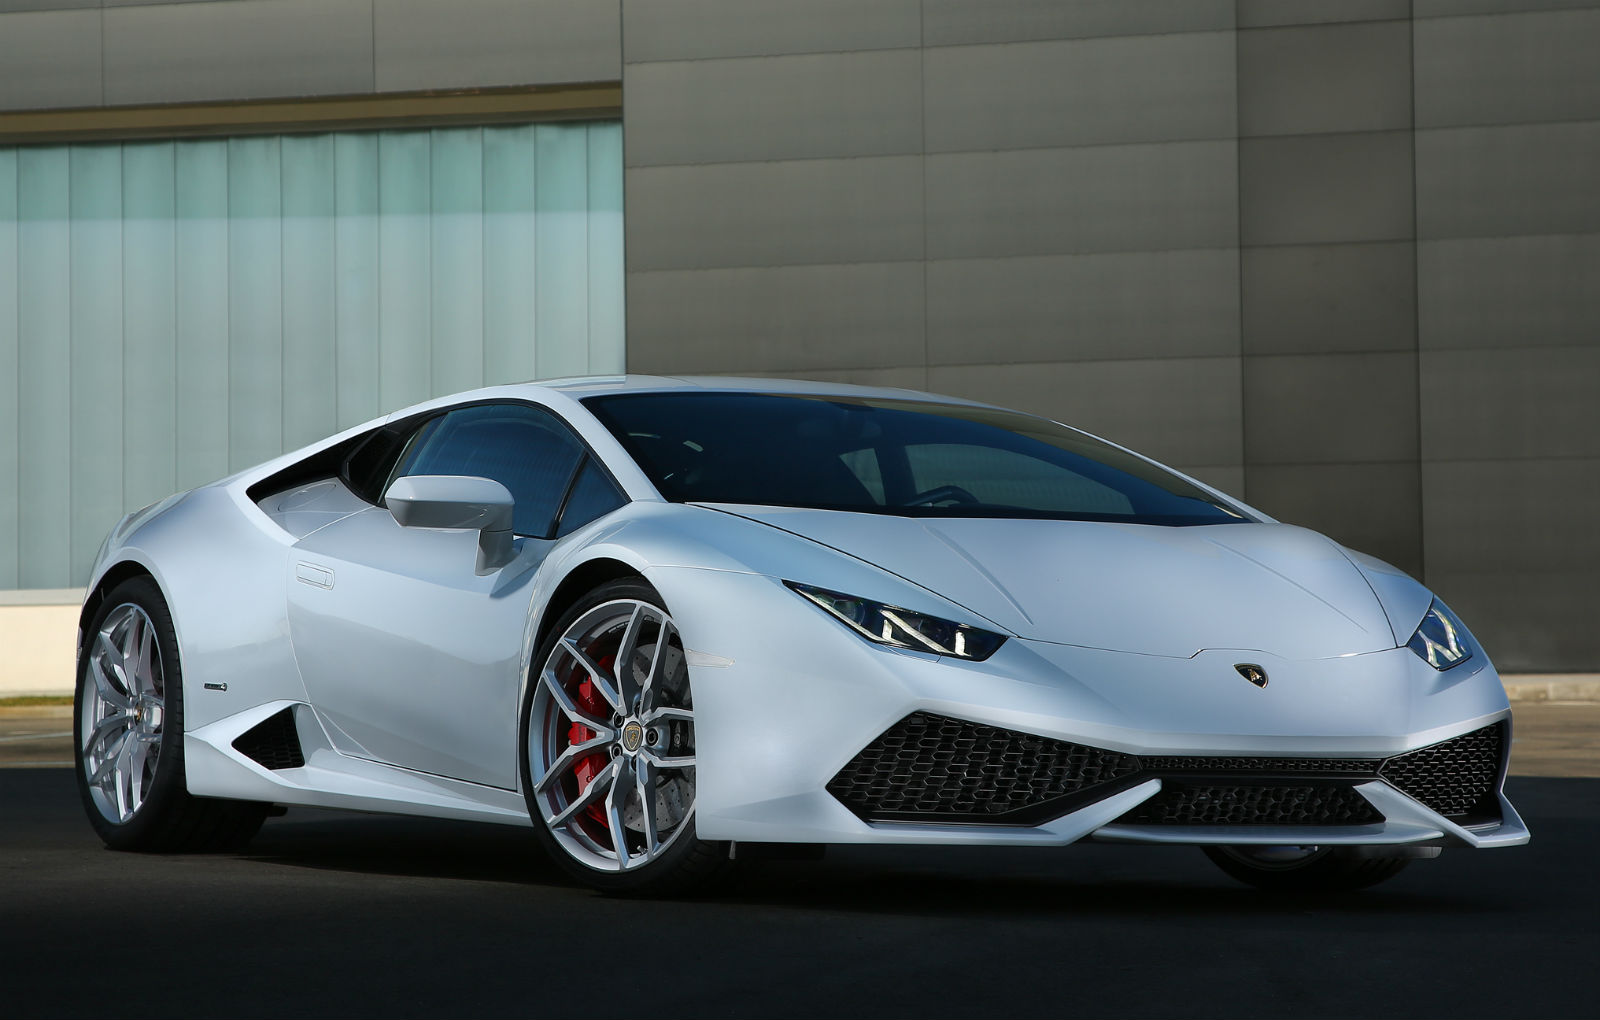 Wallpaper Lamborghini Huracan Sports Car Cool 2015 HD Wallpapers 1600x1020